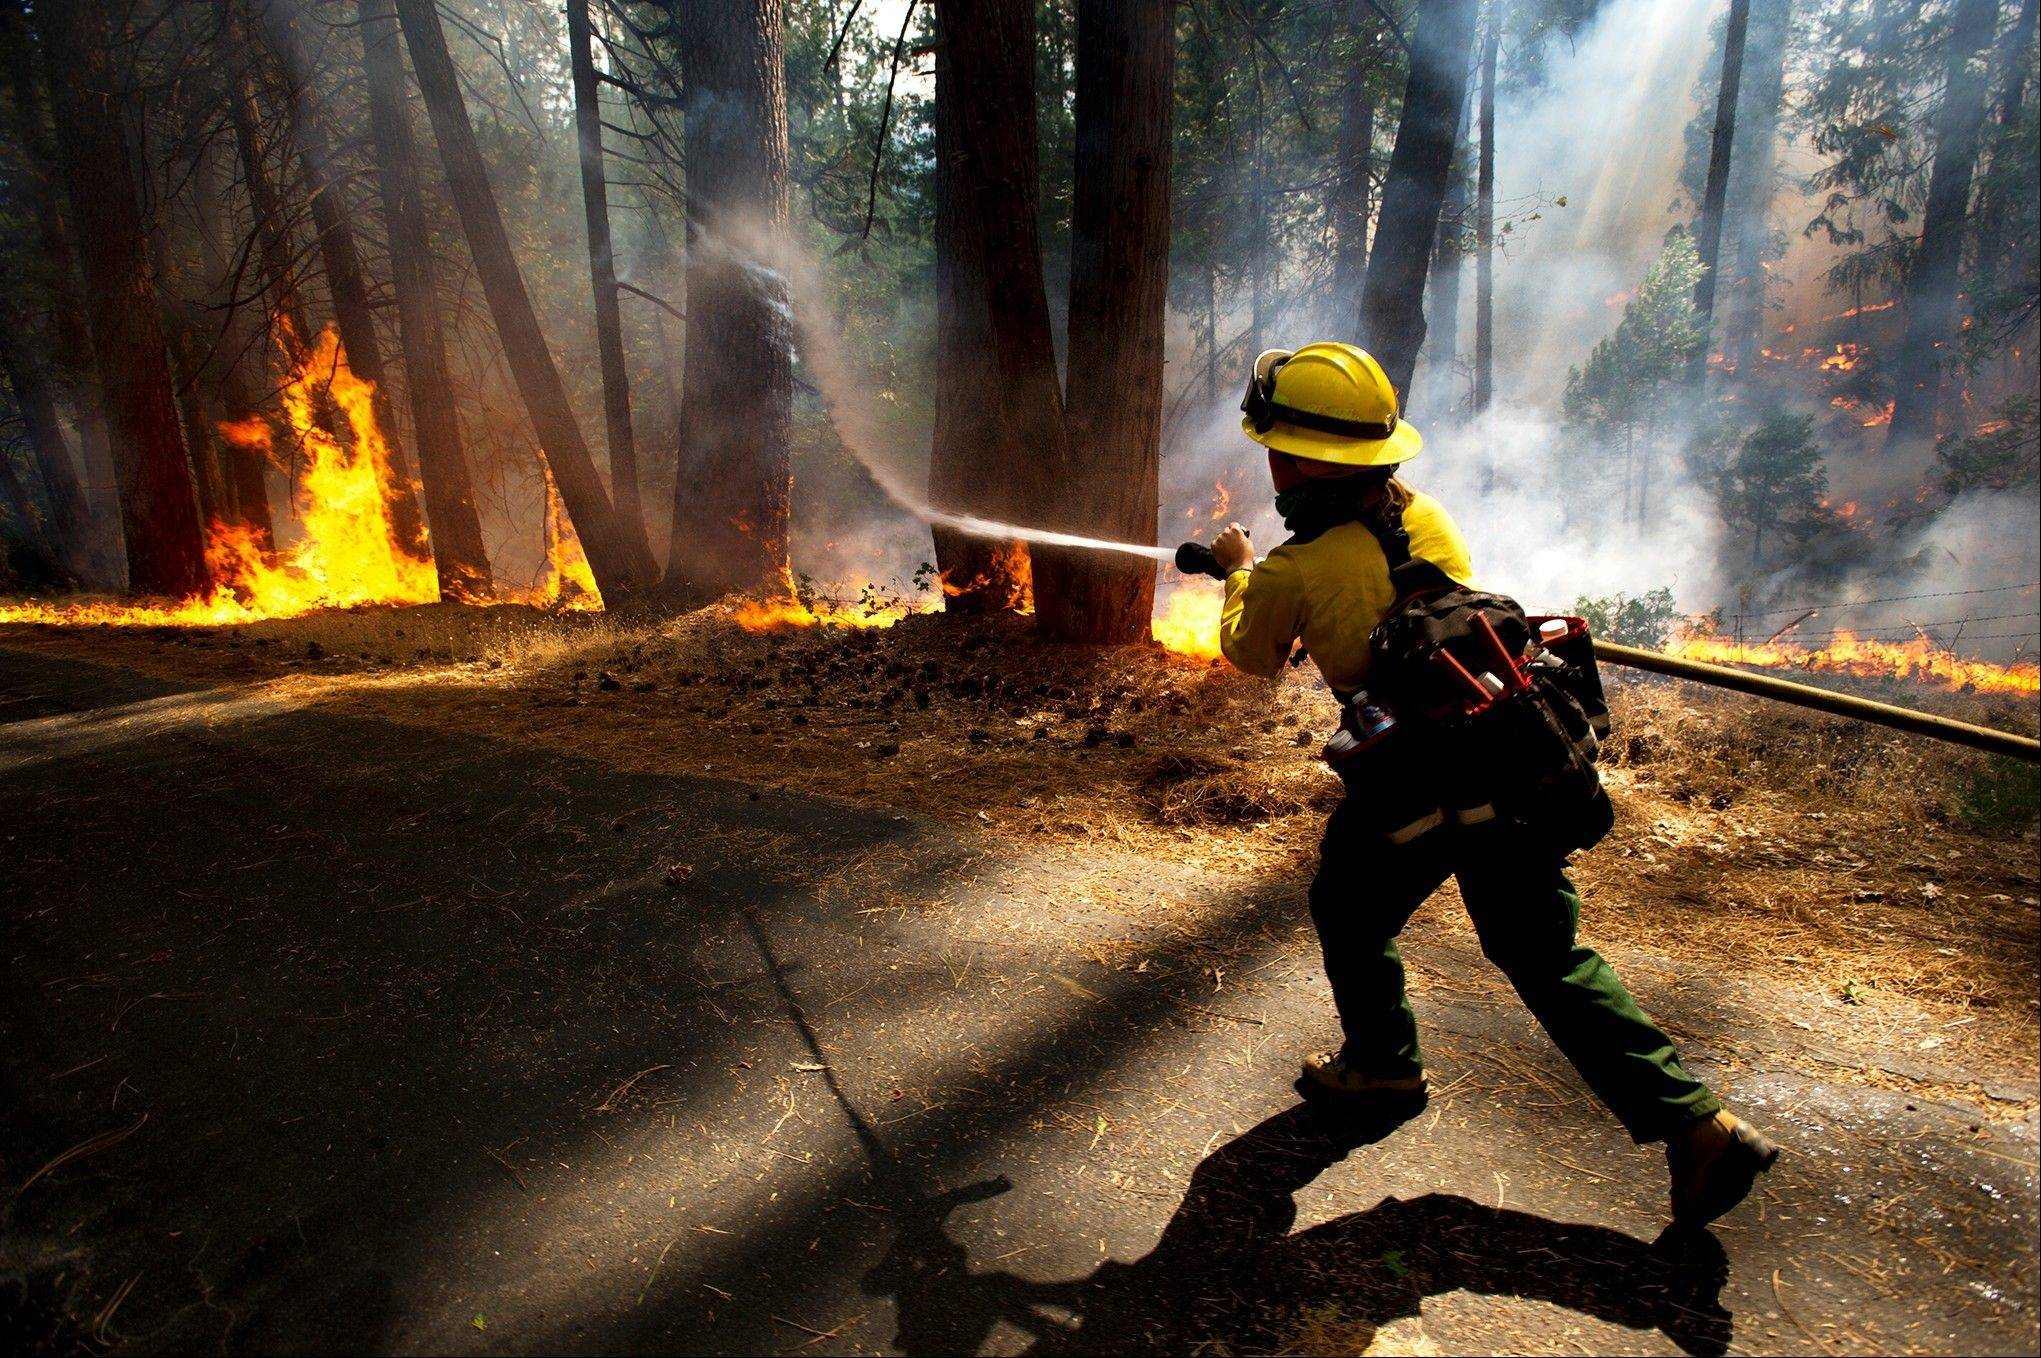 Colorado Rural Protection firefighter Molly McGee fights the Rim Fire in the Stanislaus National Forest Thursday, Aug. 22, 2013.